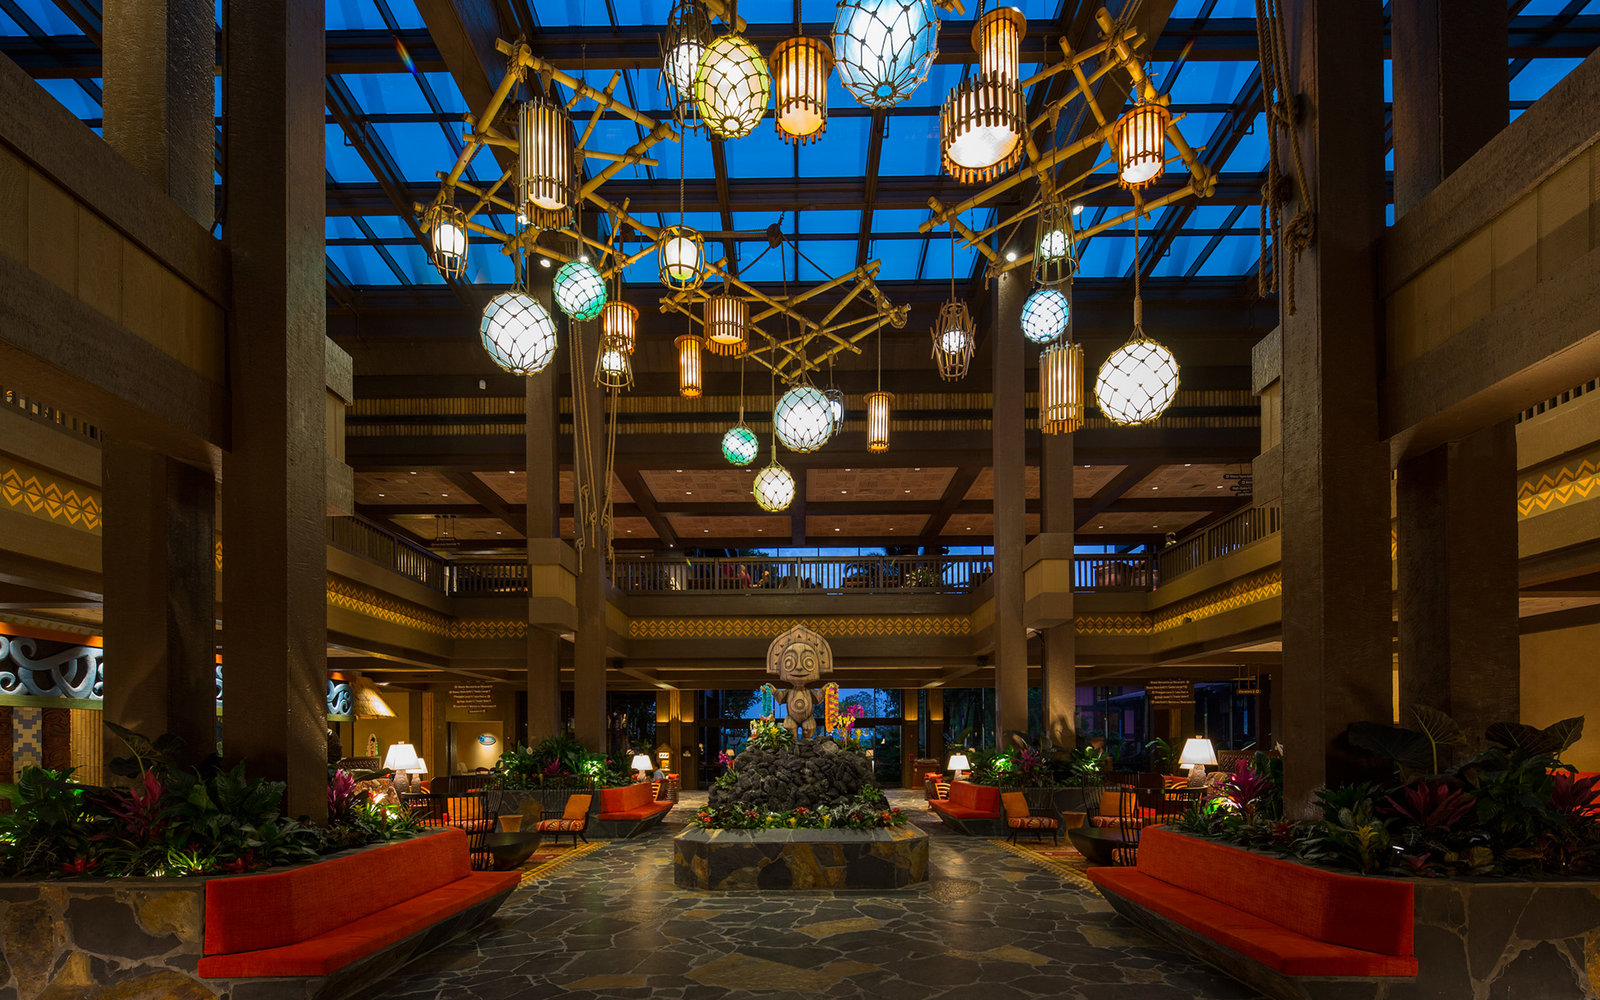 The Best Hotel For Every Possible Disney World Vacation